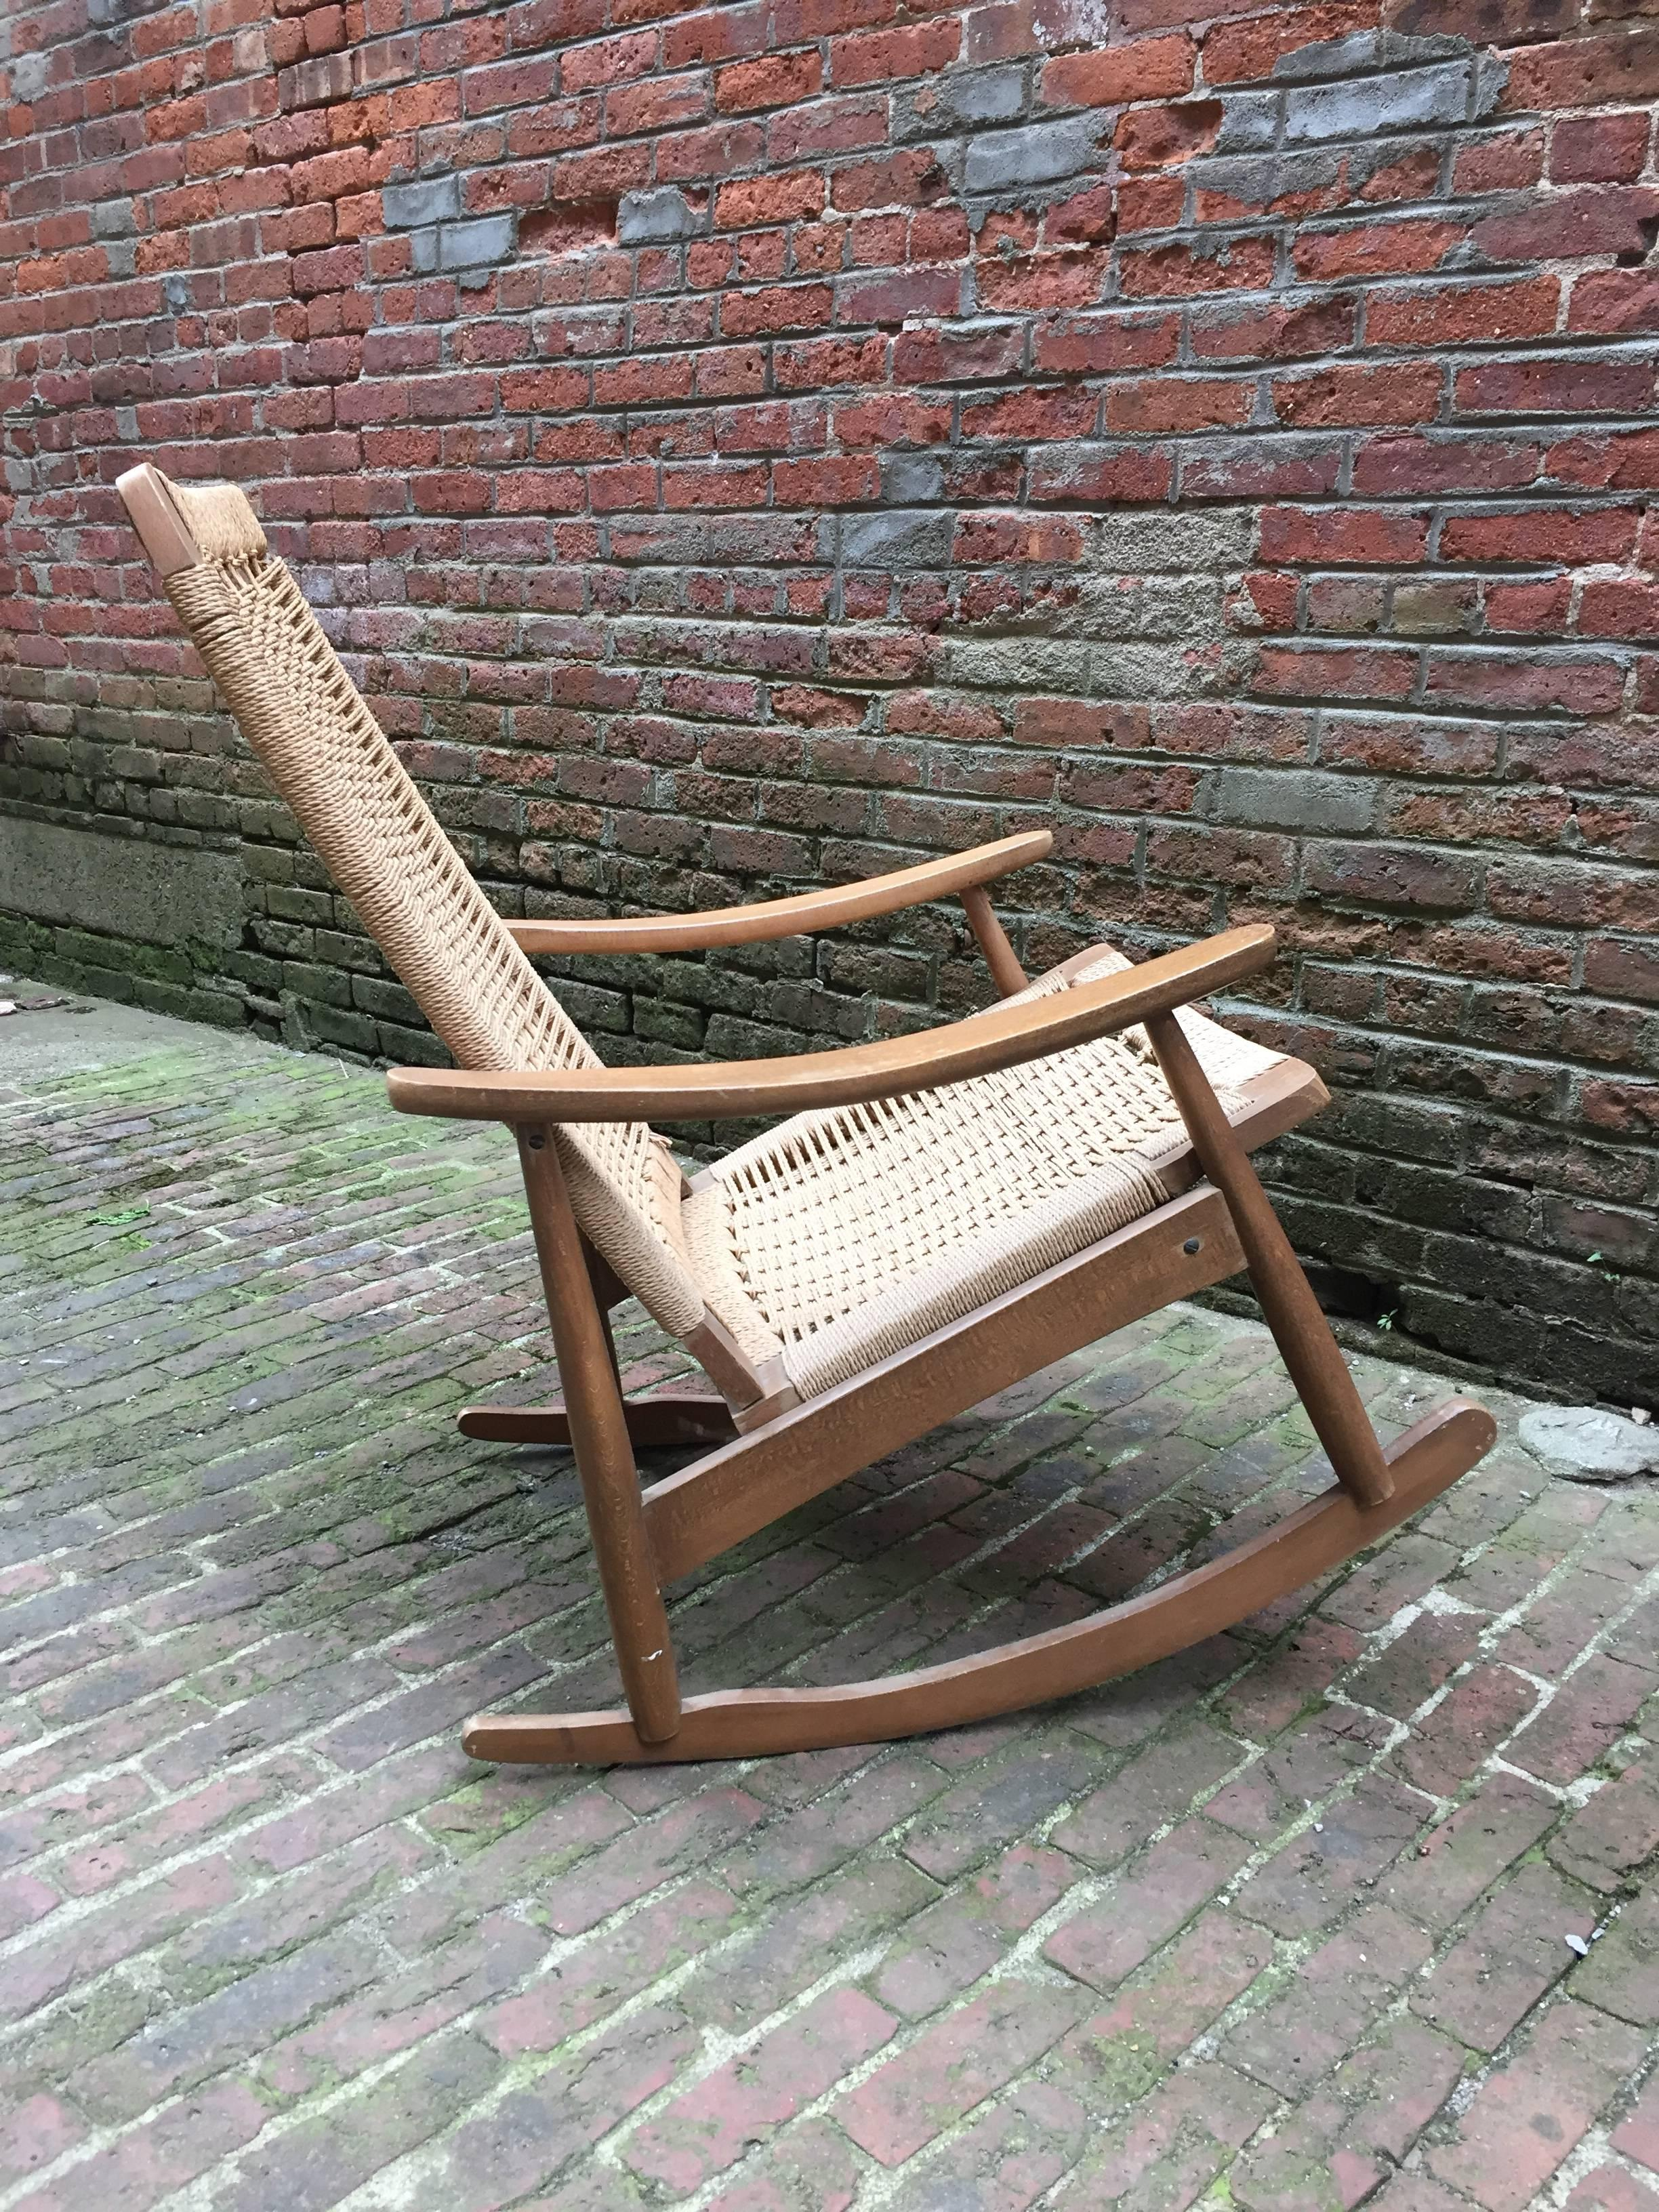 Mid-Century Modern 1960s Modern Rope and Wood Rocking Chair For Sale & 1960s Modern Rope and Wood Rocking Chair For Sale at 1stdibs